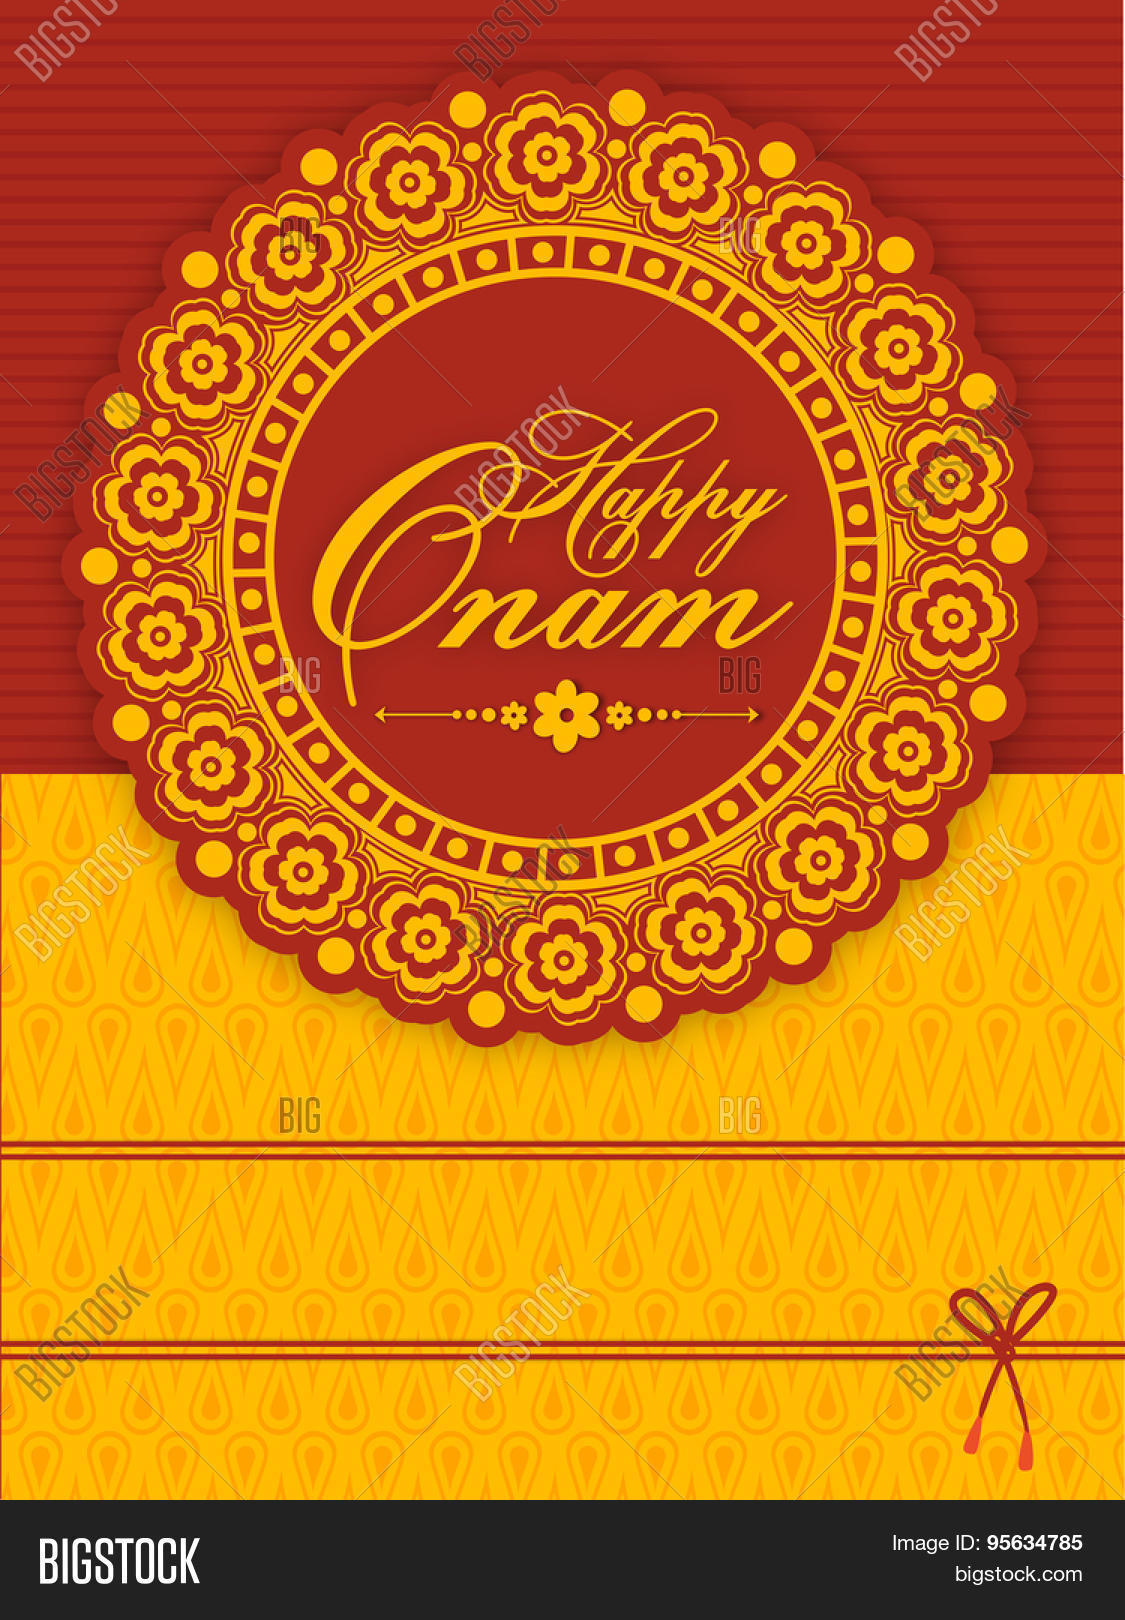 Beautiful floral design decorated vector photo bigstock beautiful floral design decorated greeting or invitation card for south indian famous festival happy onam kristyandbryce Image collections